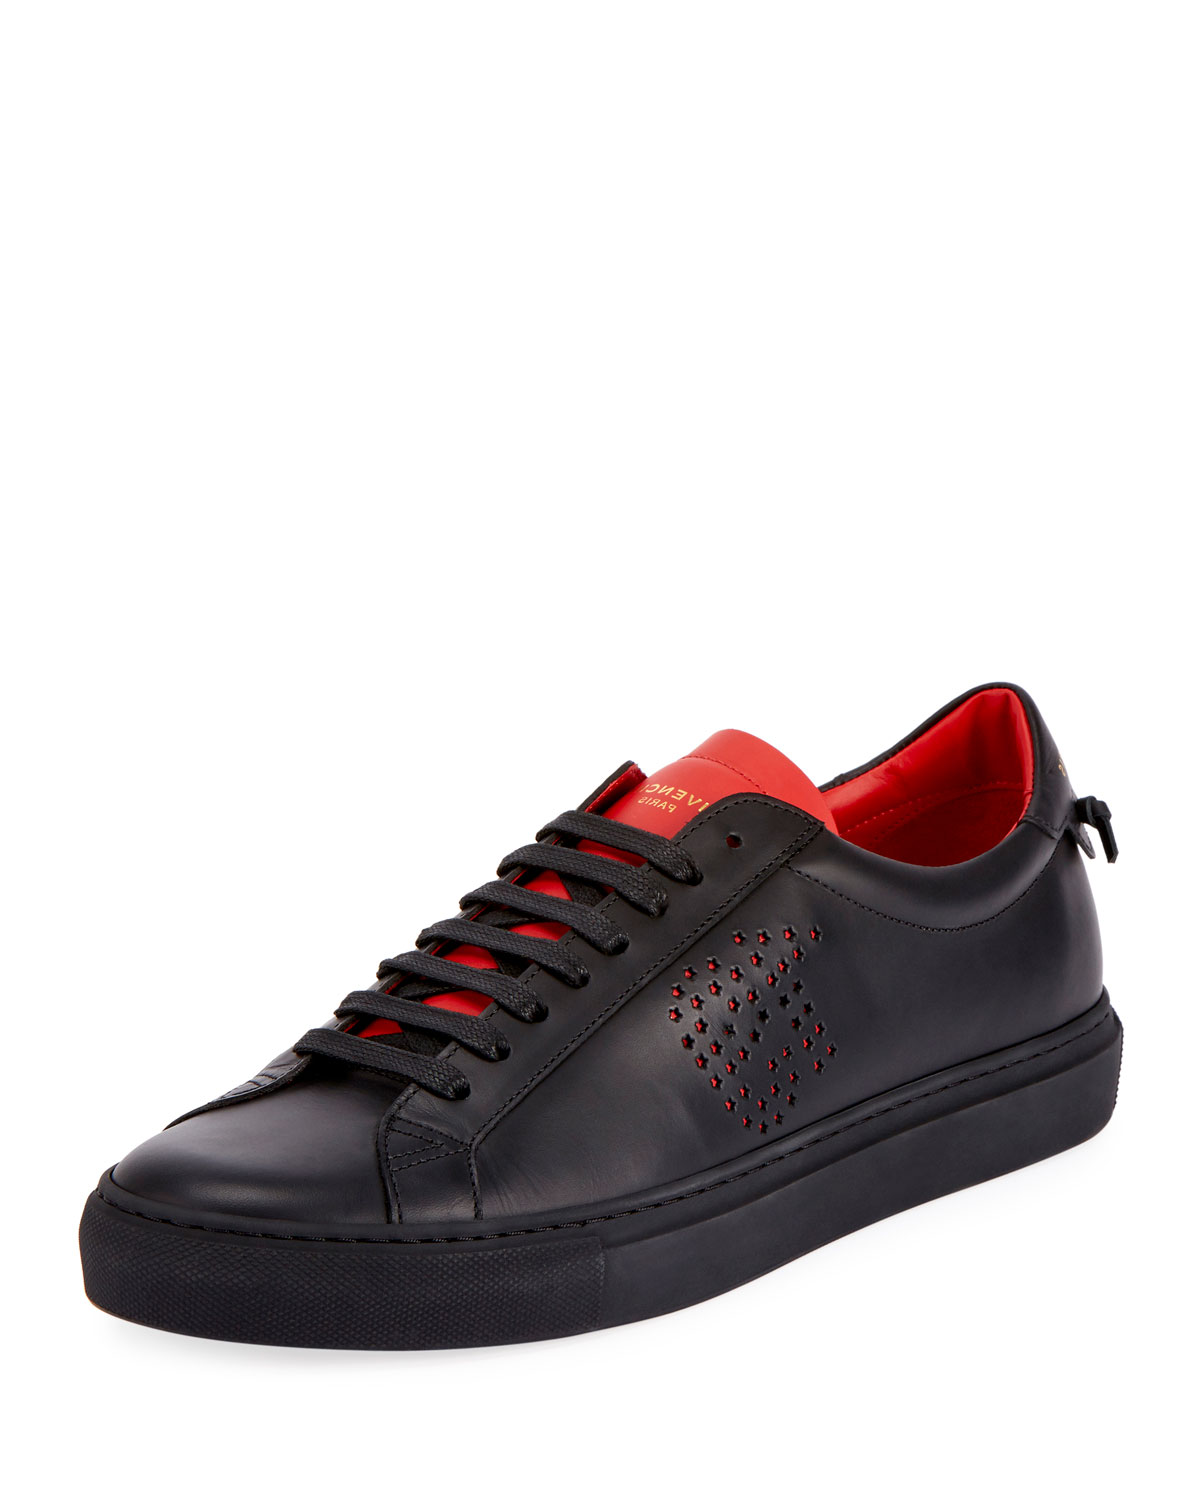 logo low-top sneakers - Black Givenchy xyyY31LTQ